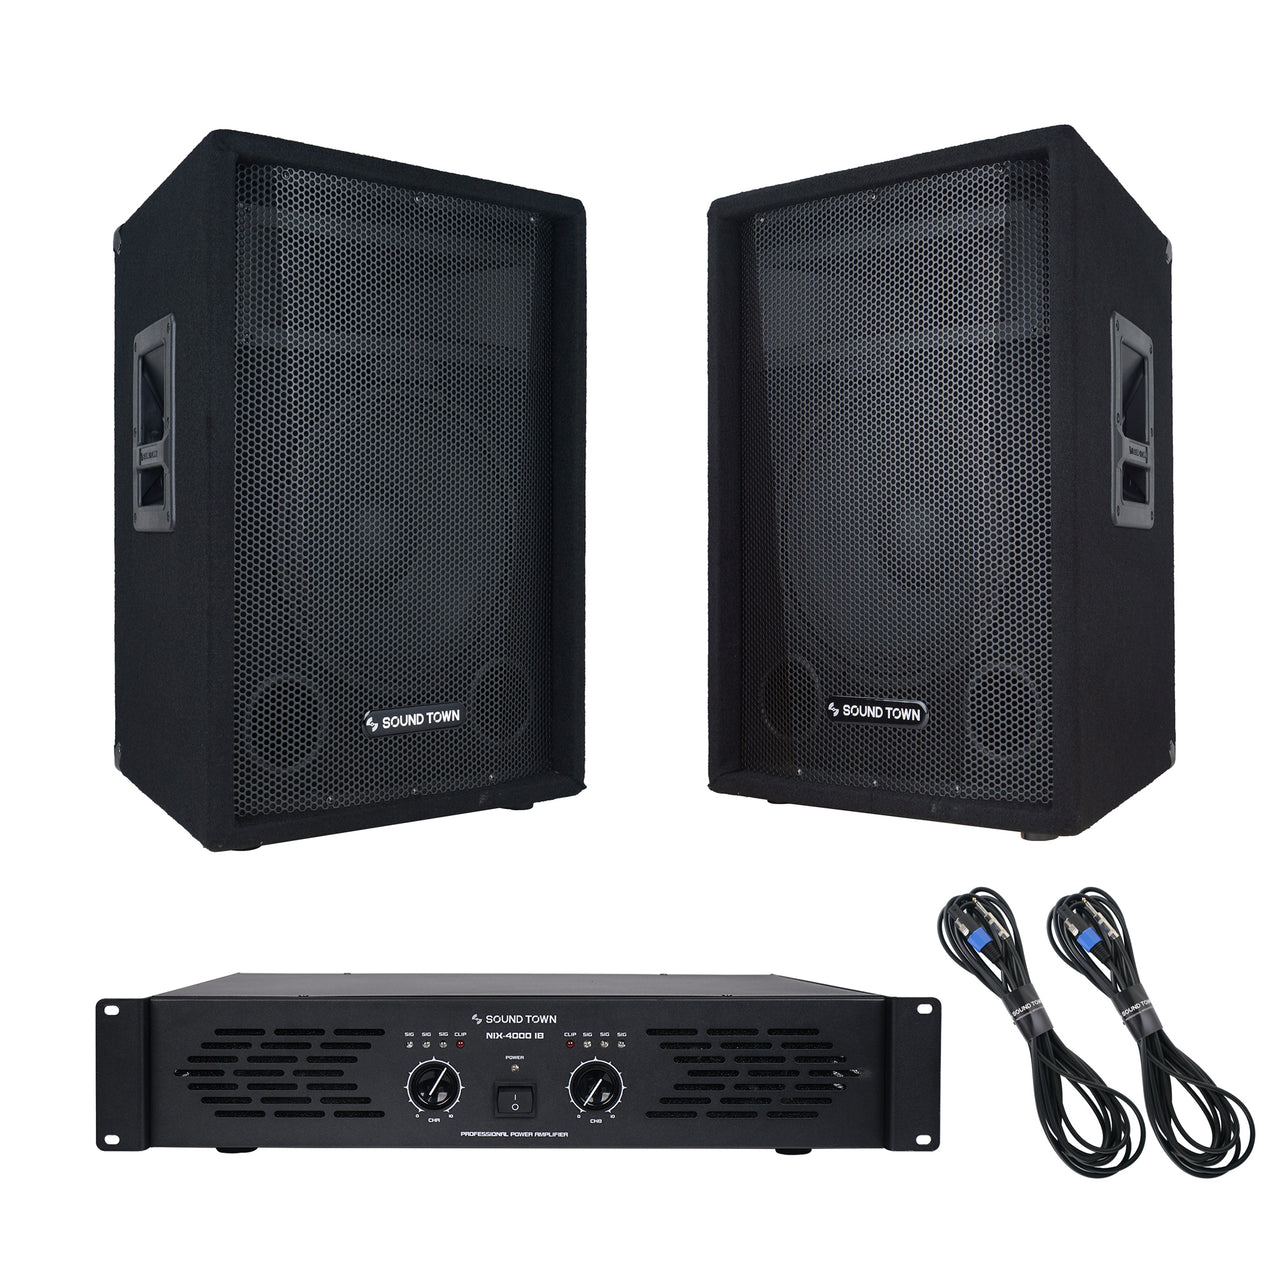 Sound Town CALLISTO-12STAS1 Professional PA System with Pair of 12-inch Speakers, One Dual-Channel Power Amplifier and Audio Cables